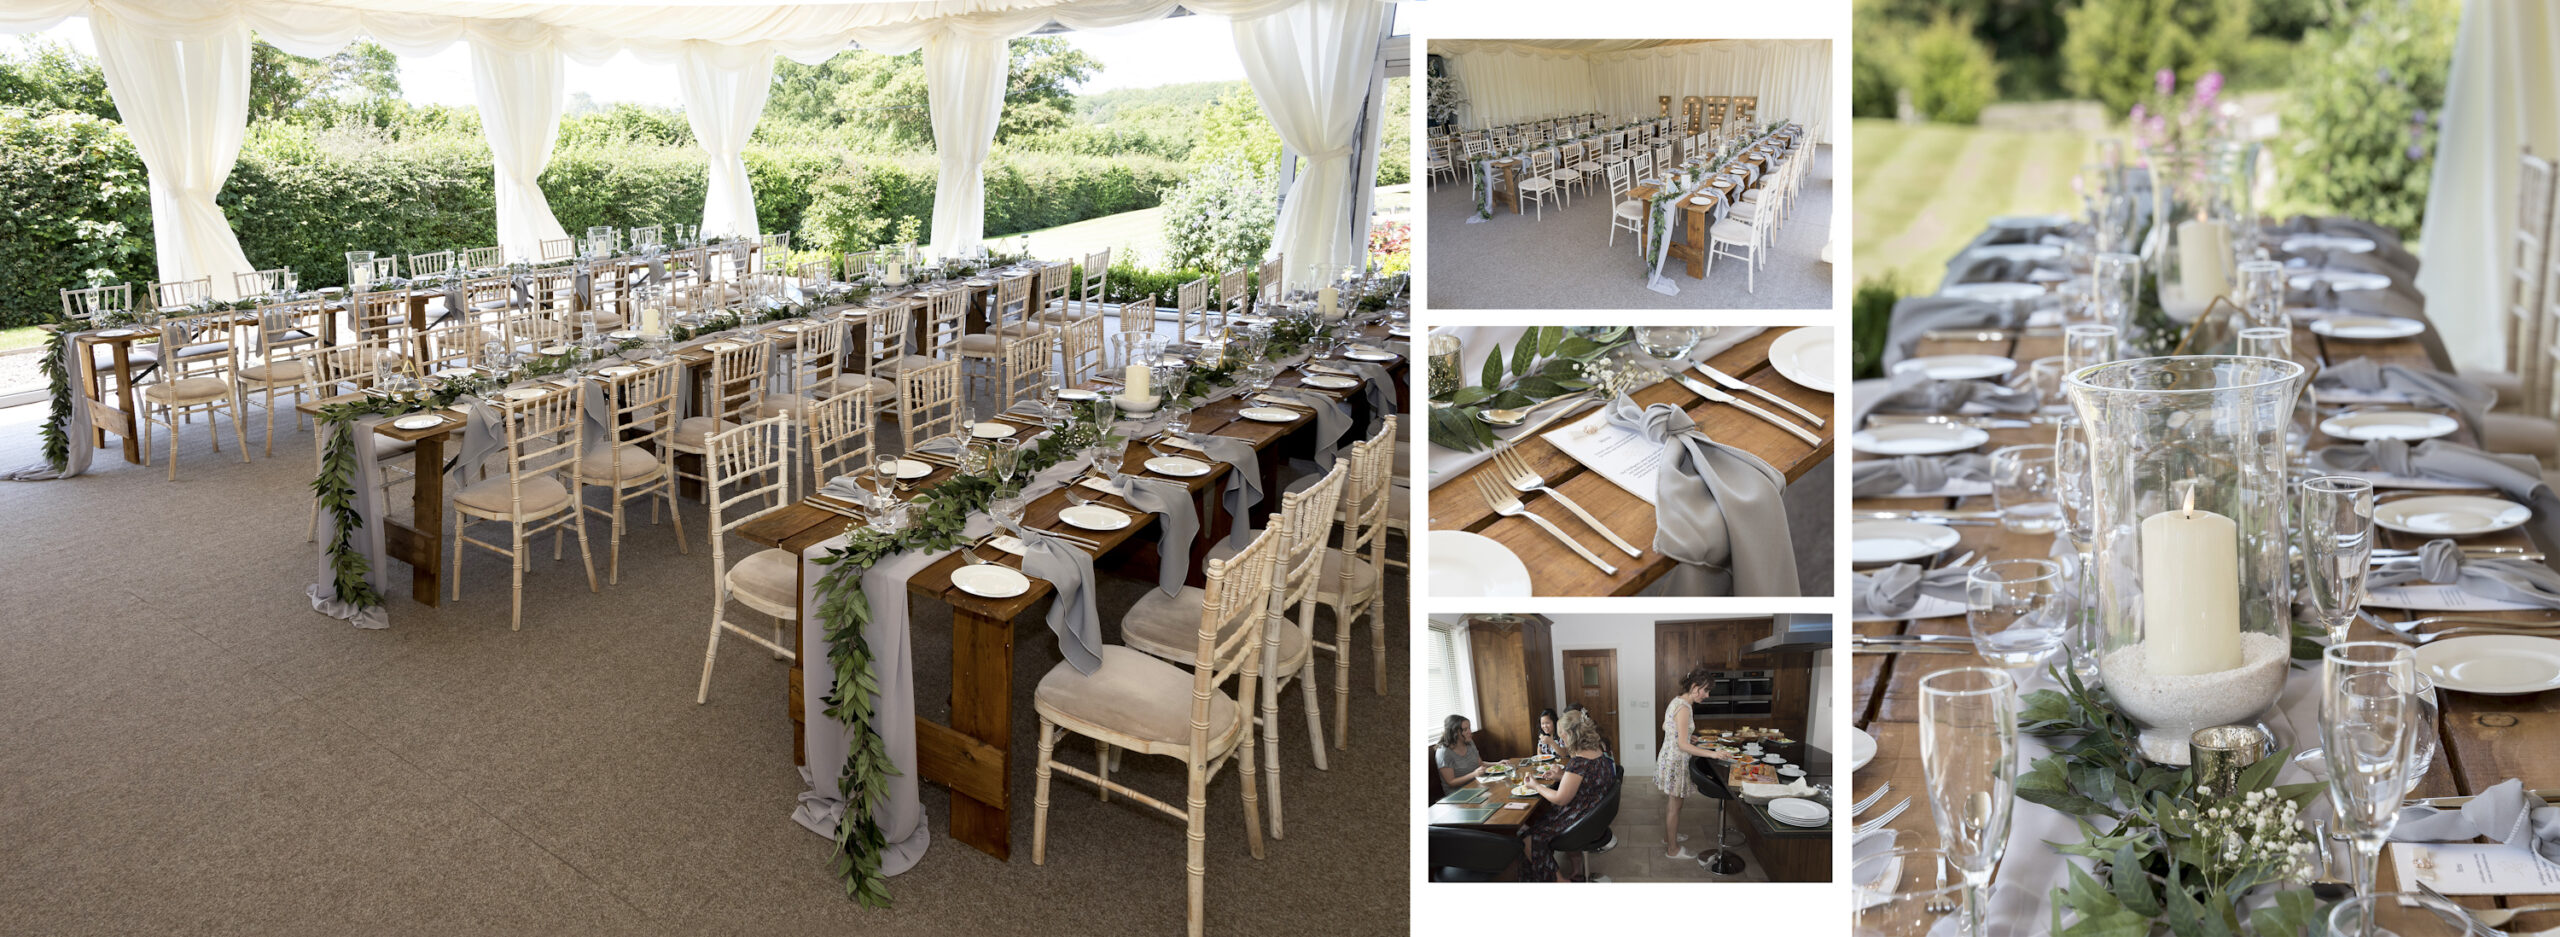 Wedding Venues - Wedding Dresses, Wedding Photography Manor Hill House